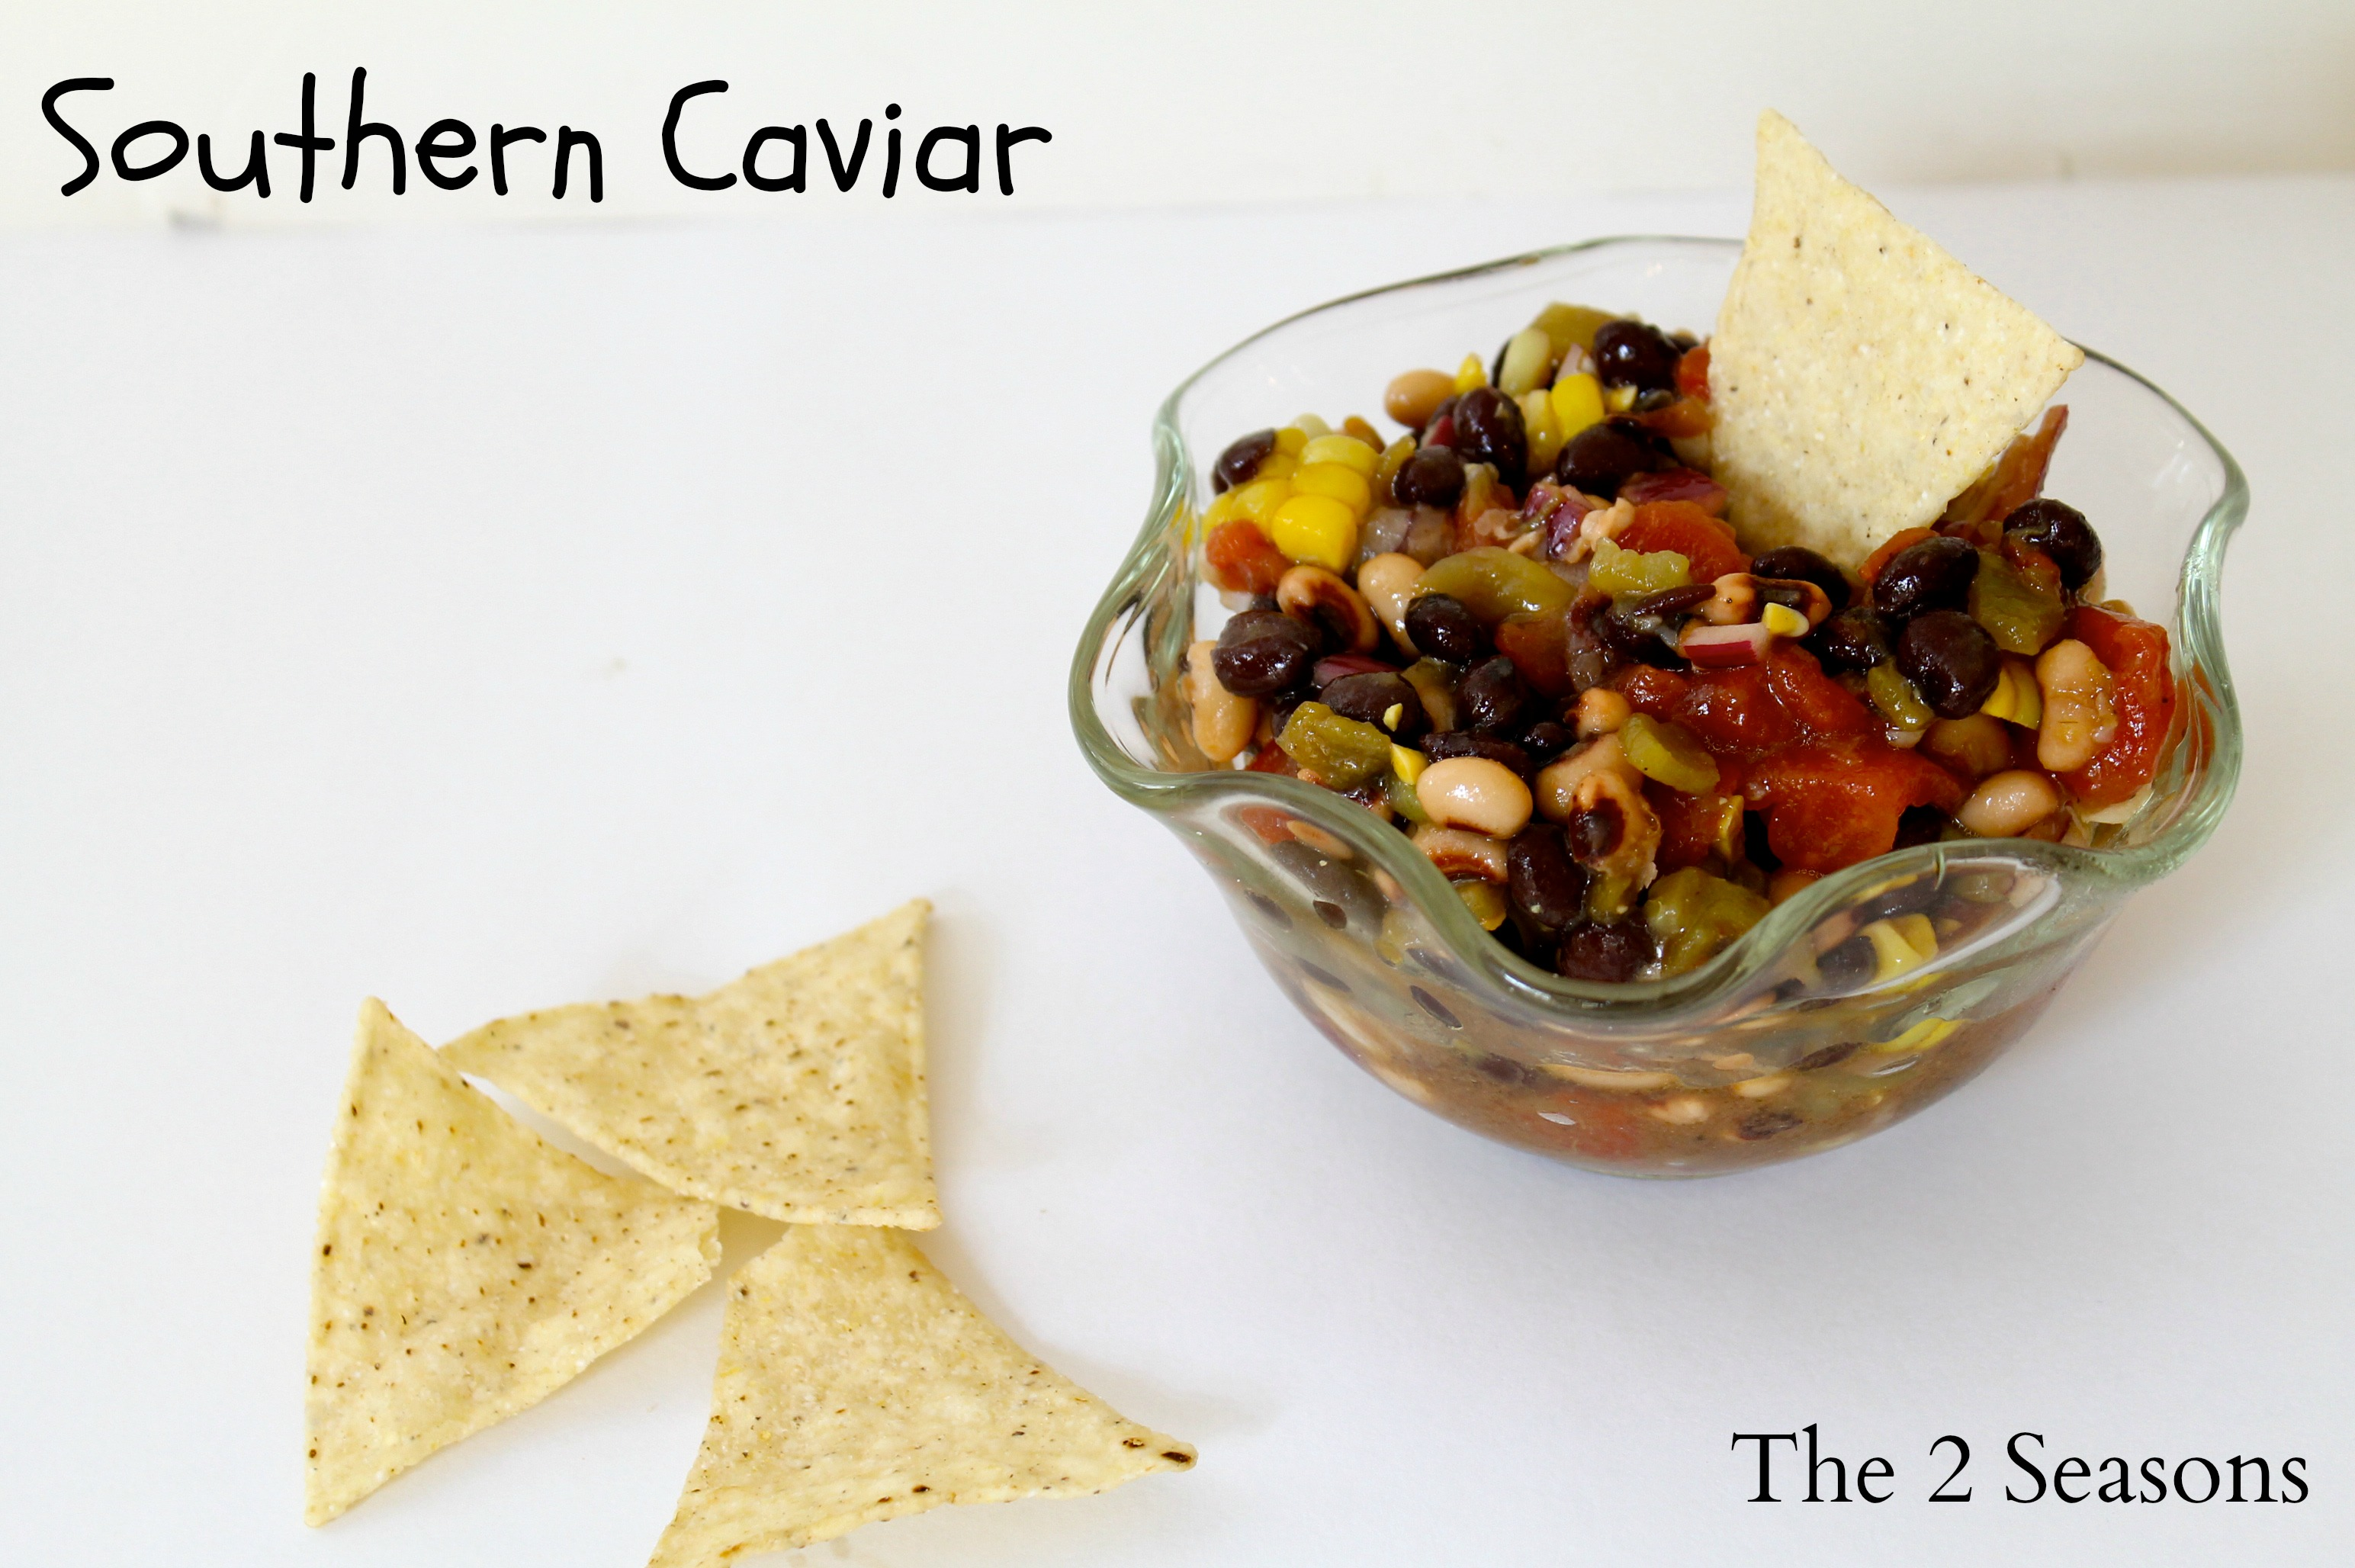 Southern Caviar - Southern Caviar - Great for Tailgating